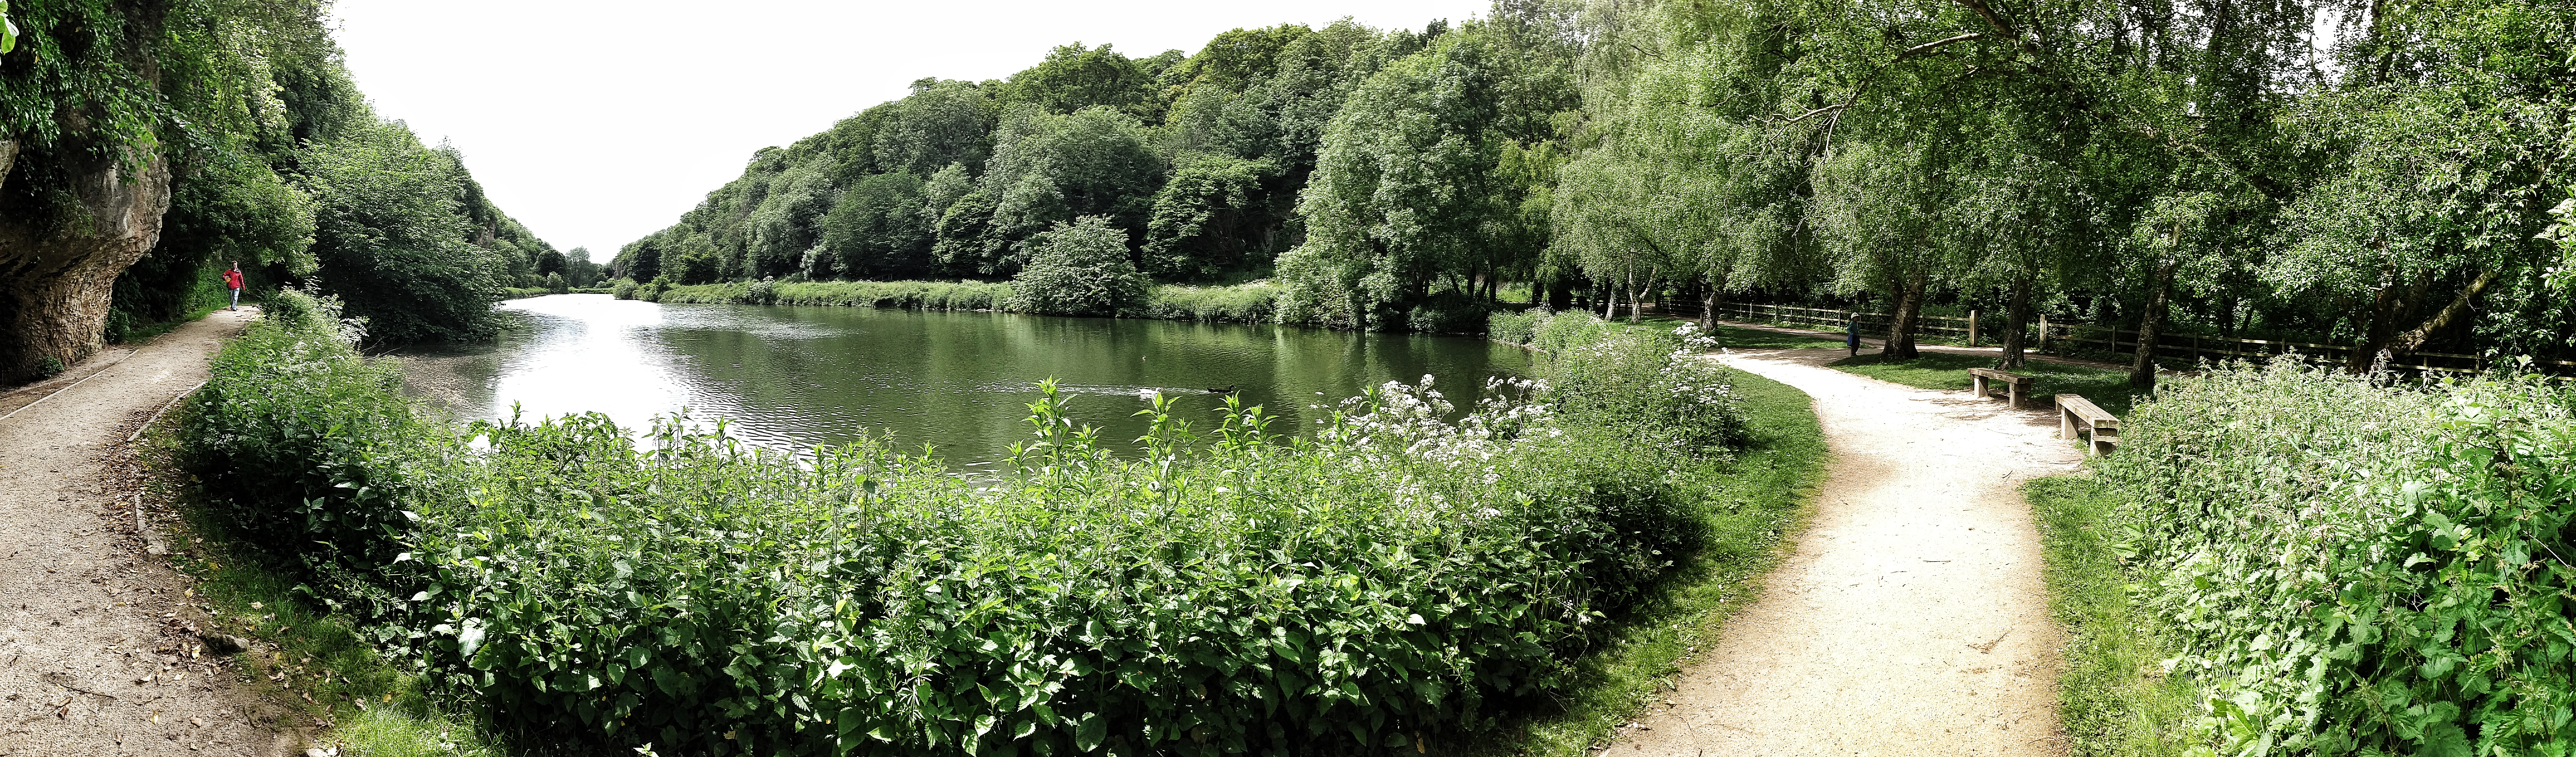 Lake At Creswell Crags Nottingham3 Q